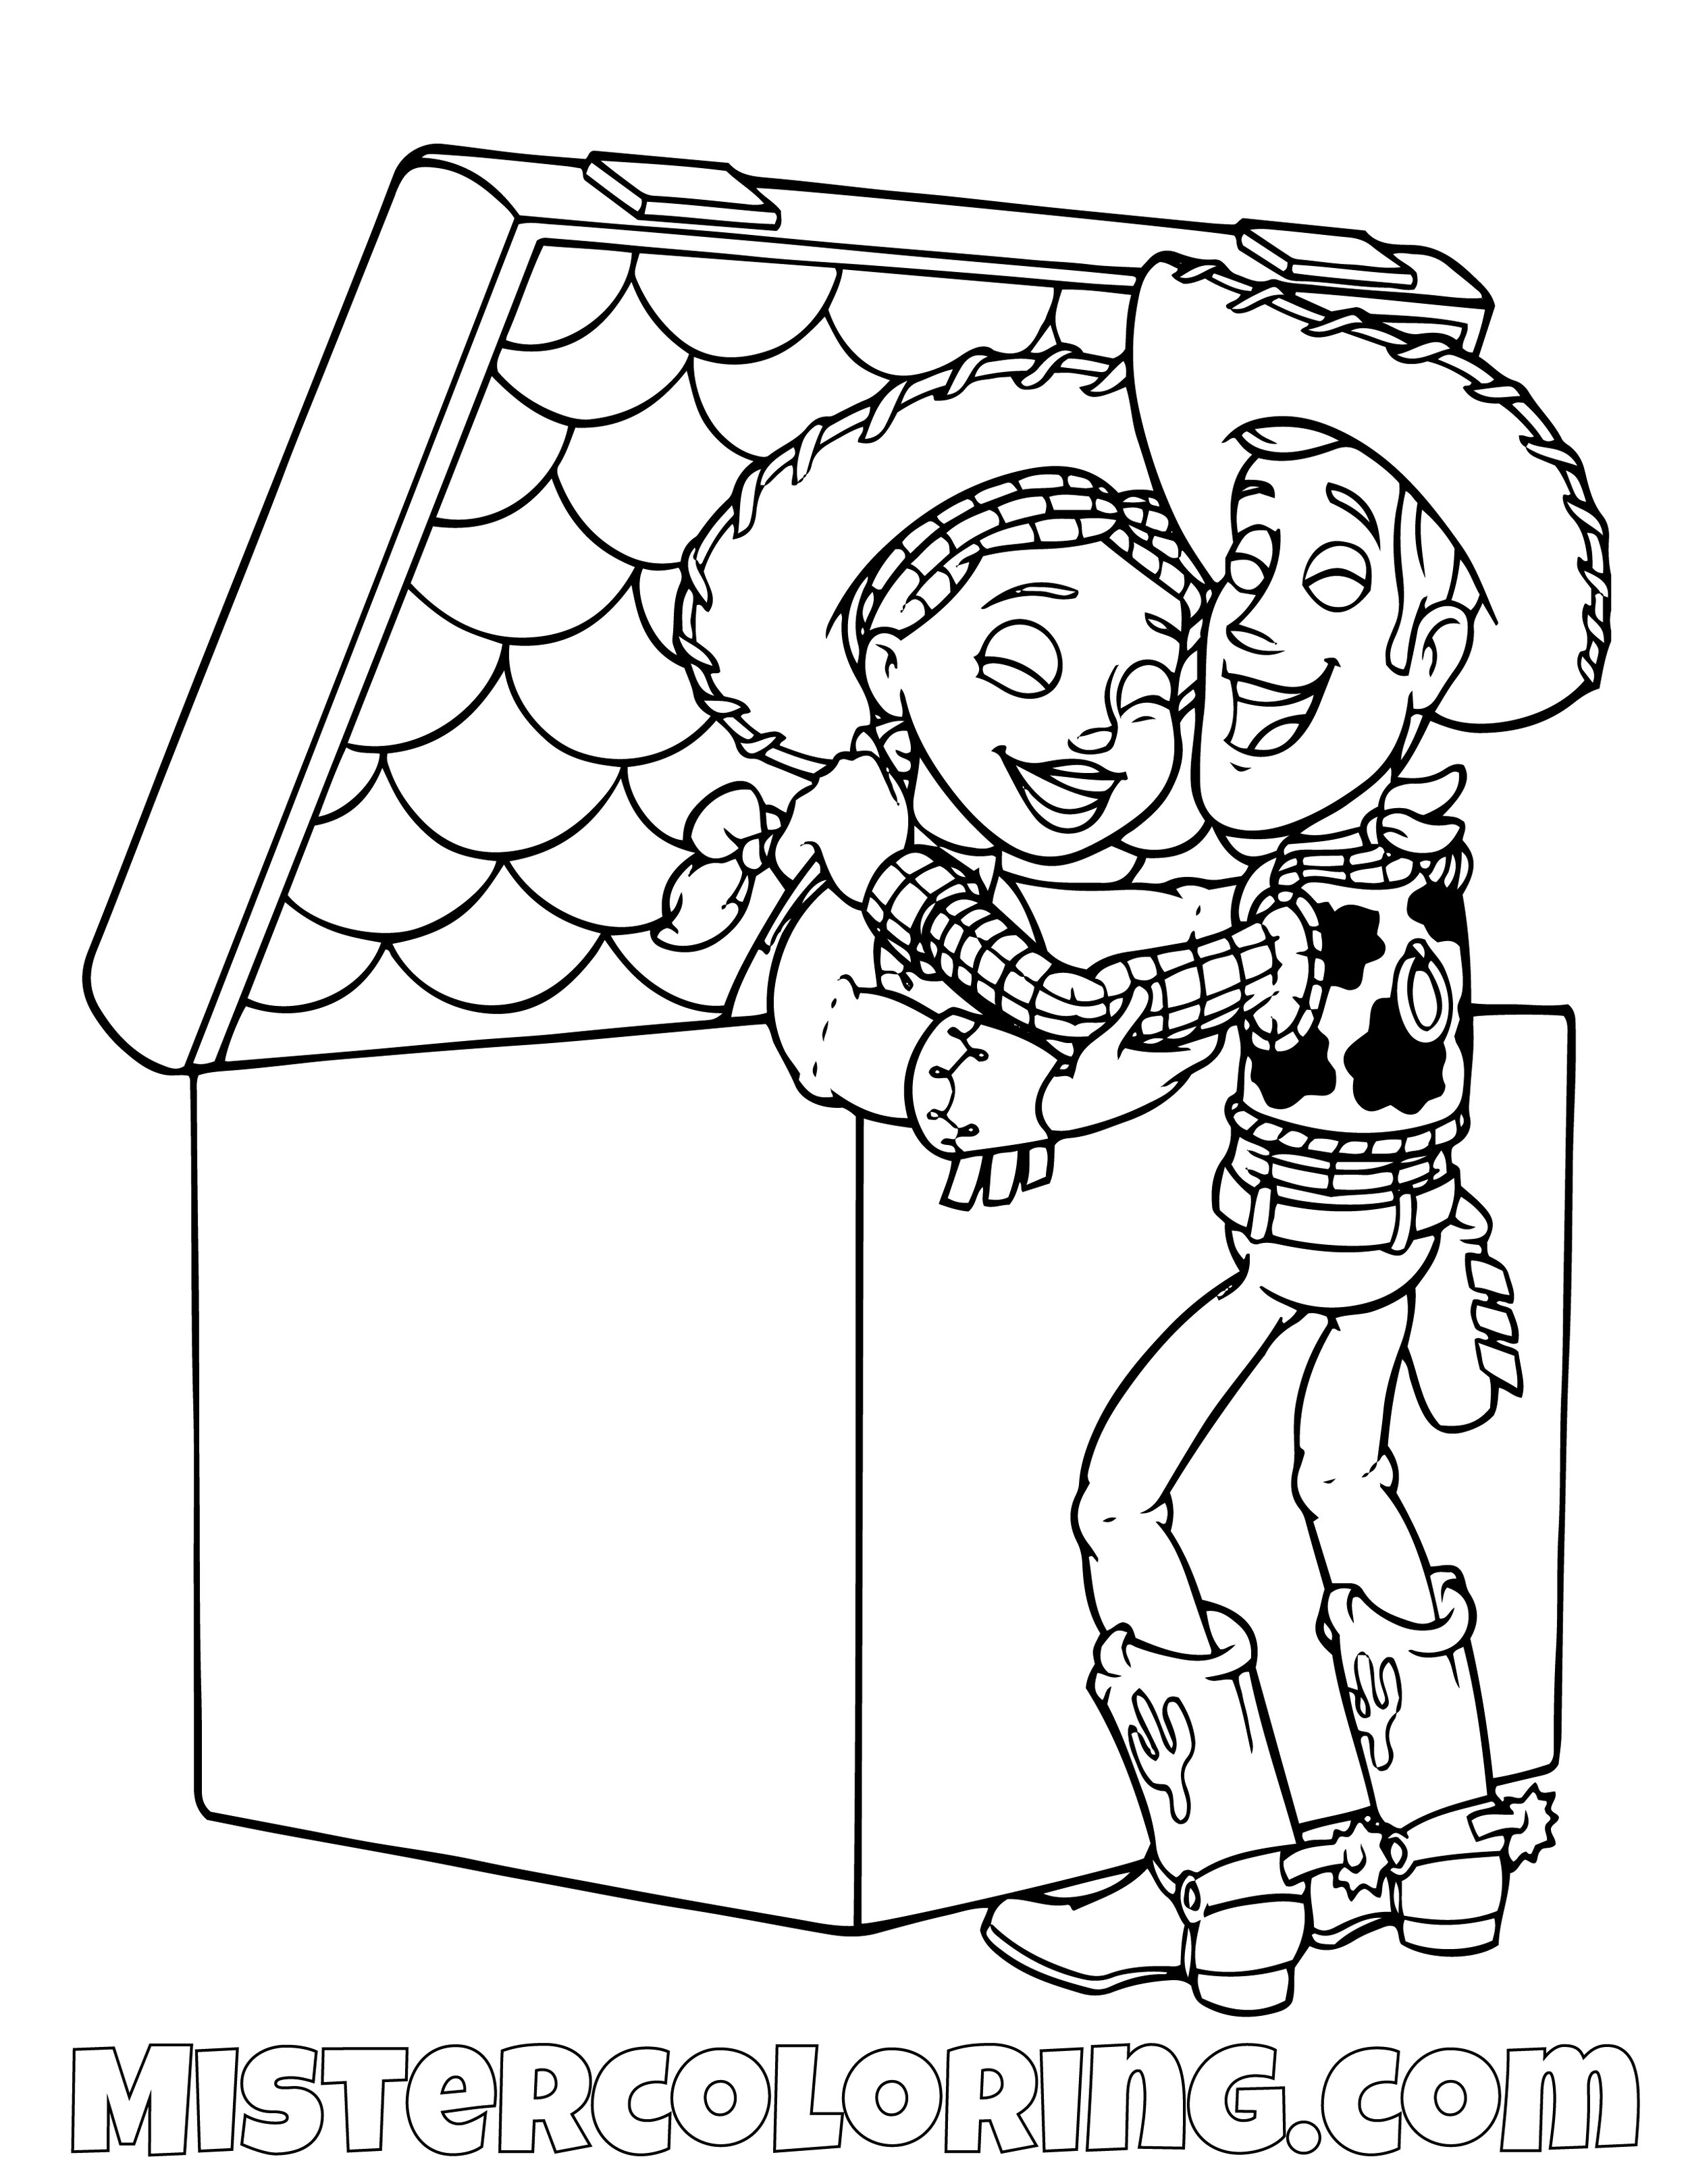 Toy Story Coloring Page For Kids — Mister Coloring